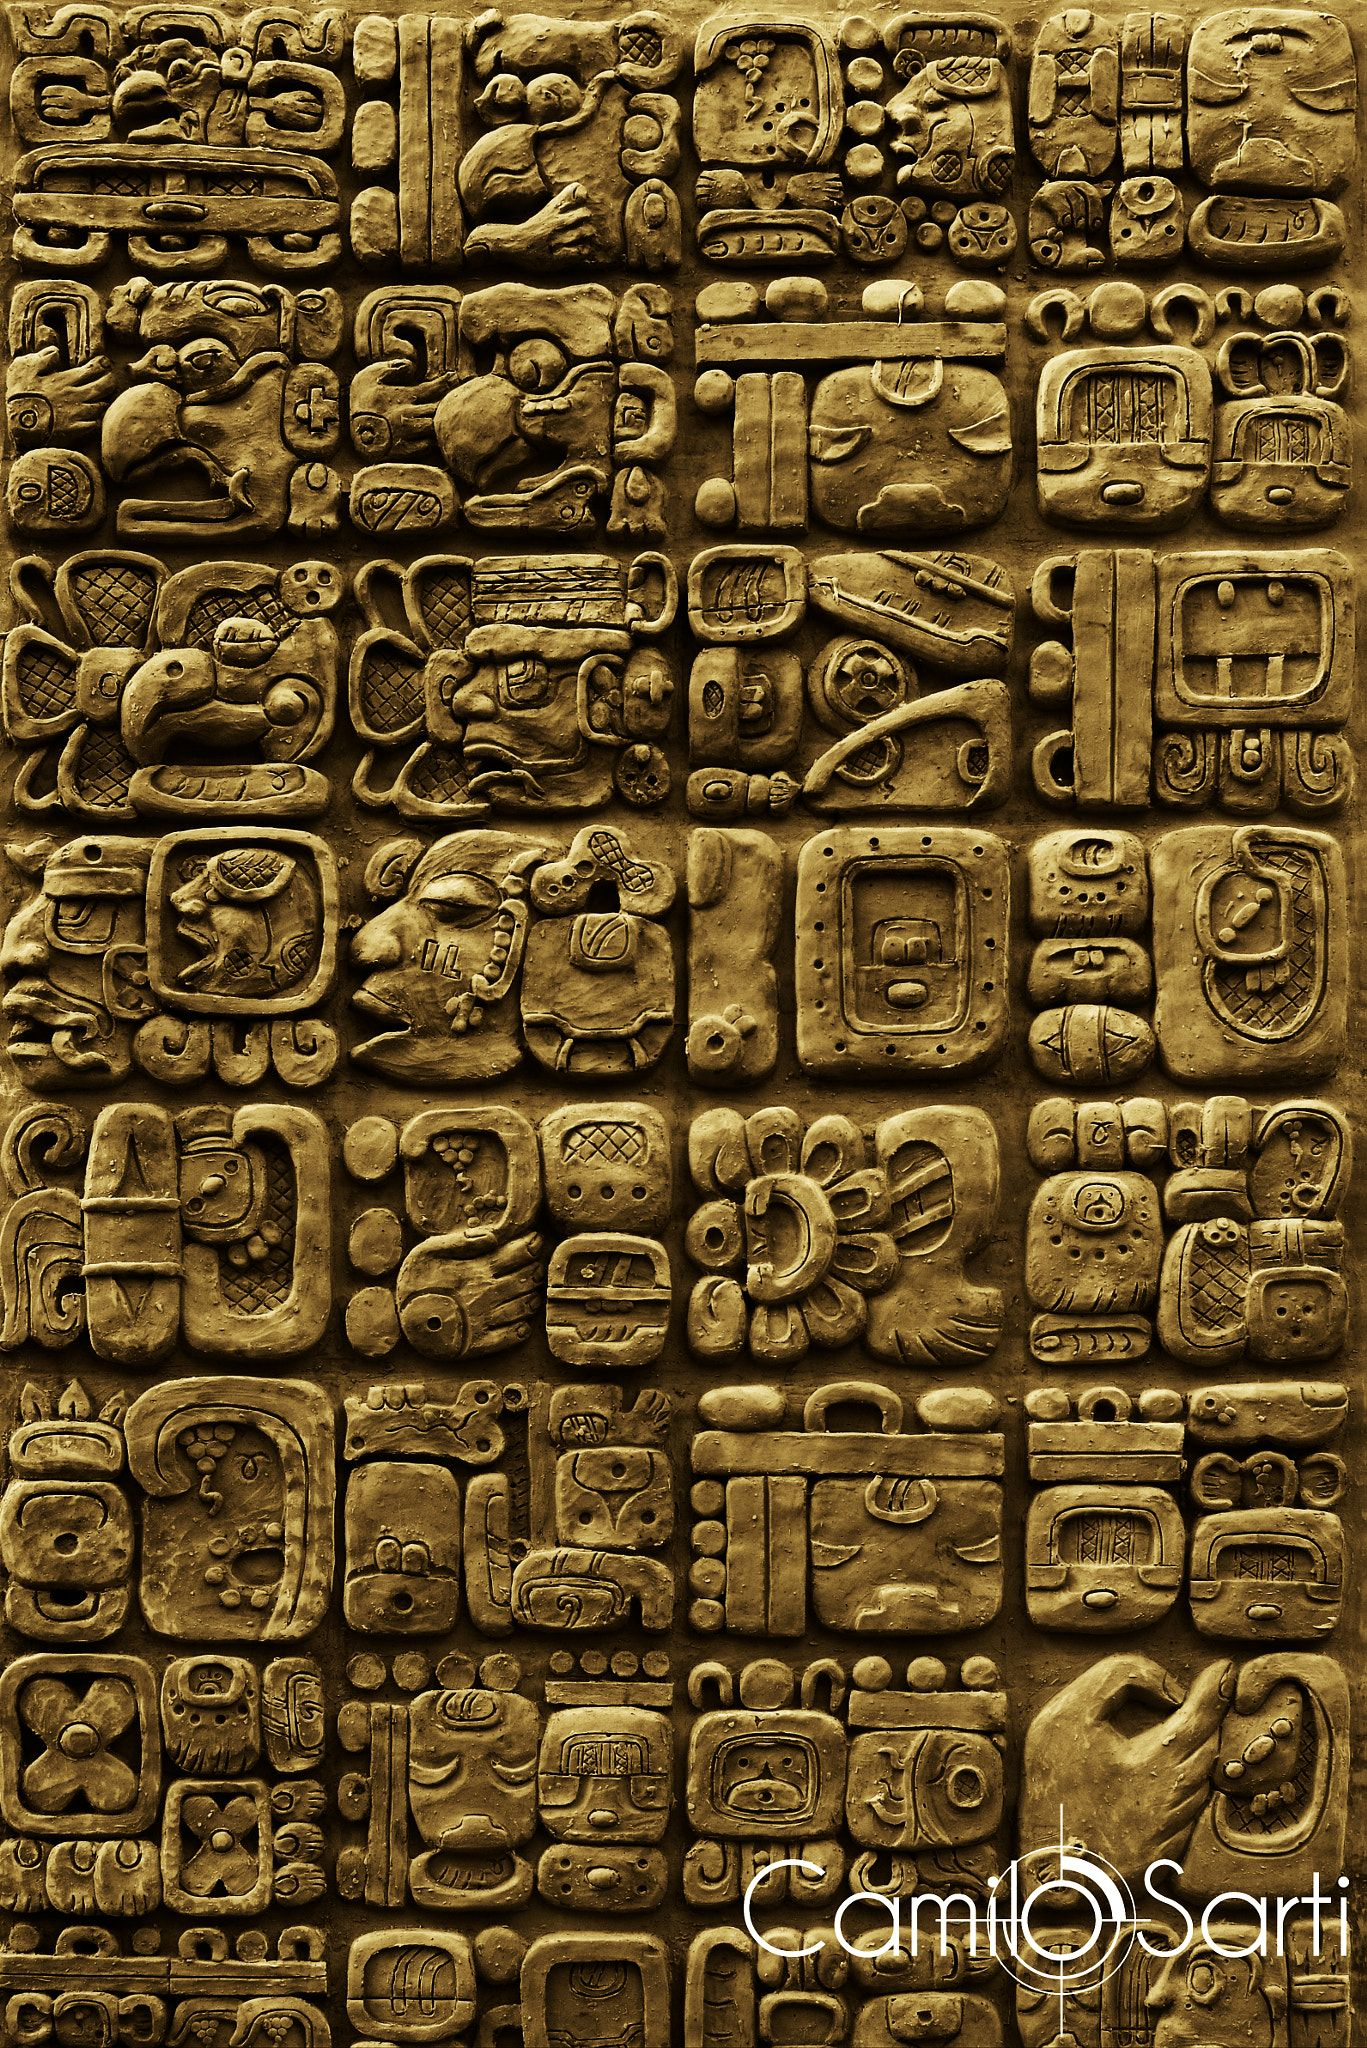 Arte America Prehispanica Details Of Maya Glyphs On A Stelae From The Archaeological Site Of